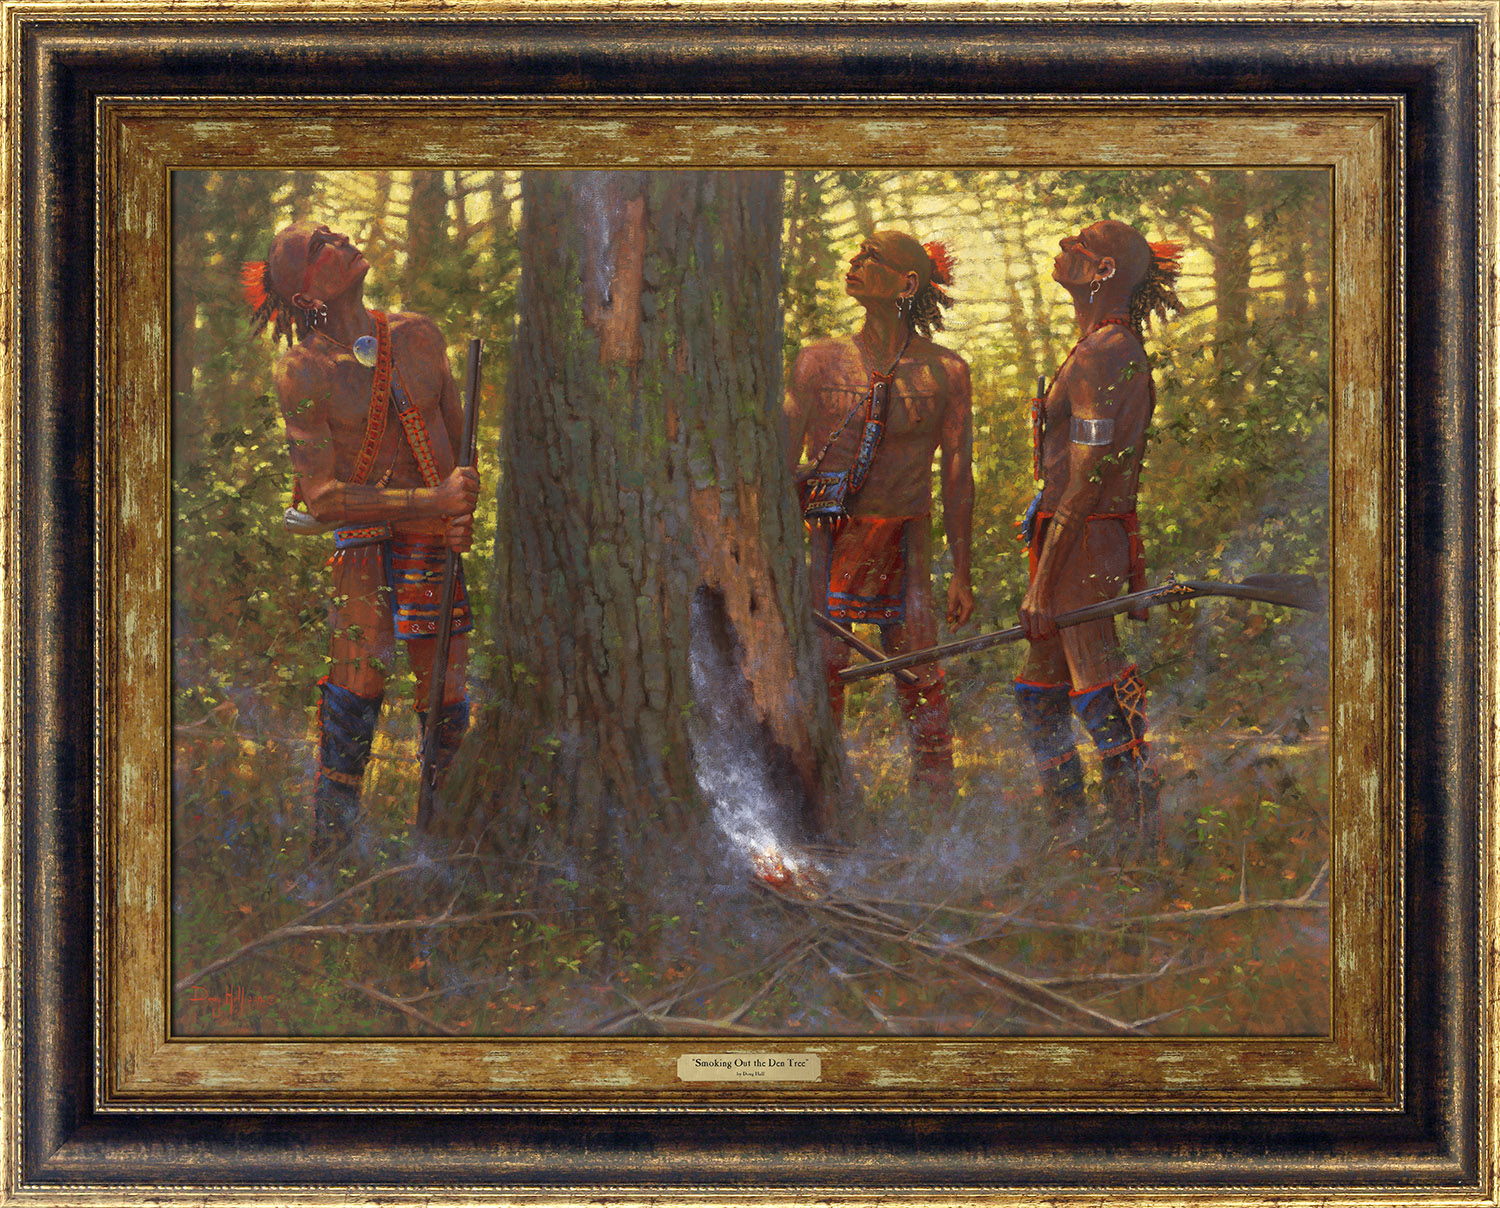 Smokin' Out the Den Tree by Doug Hall | Giclée